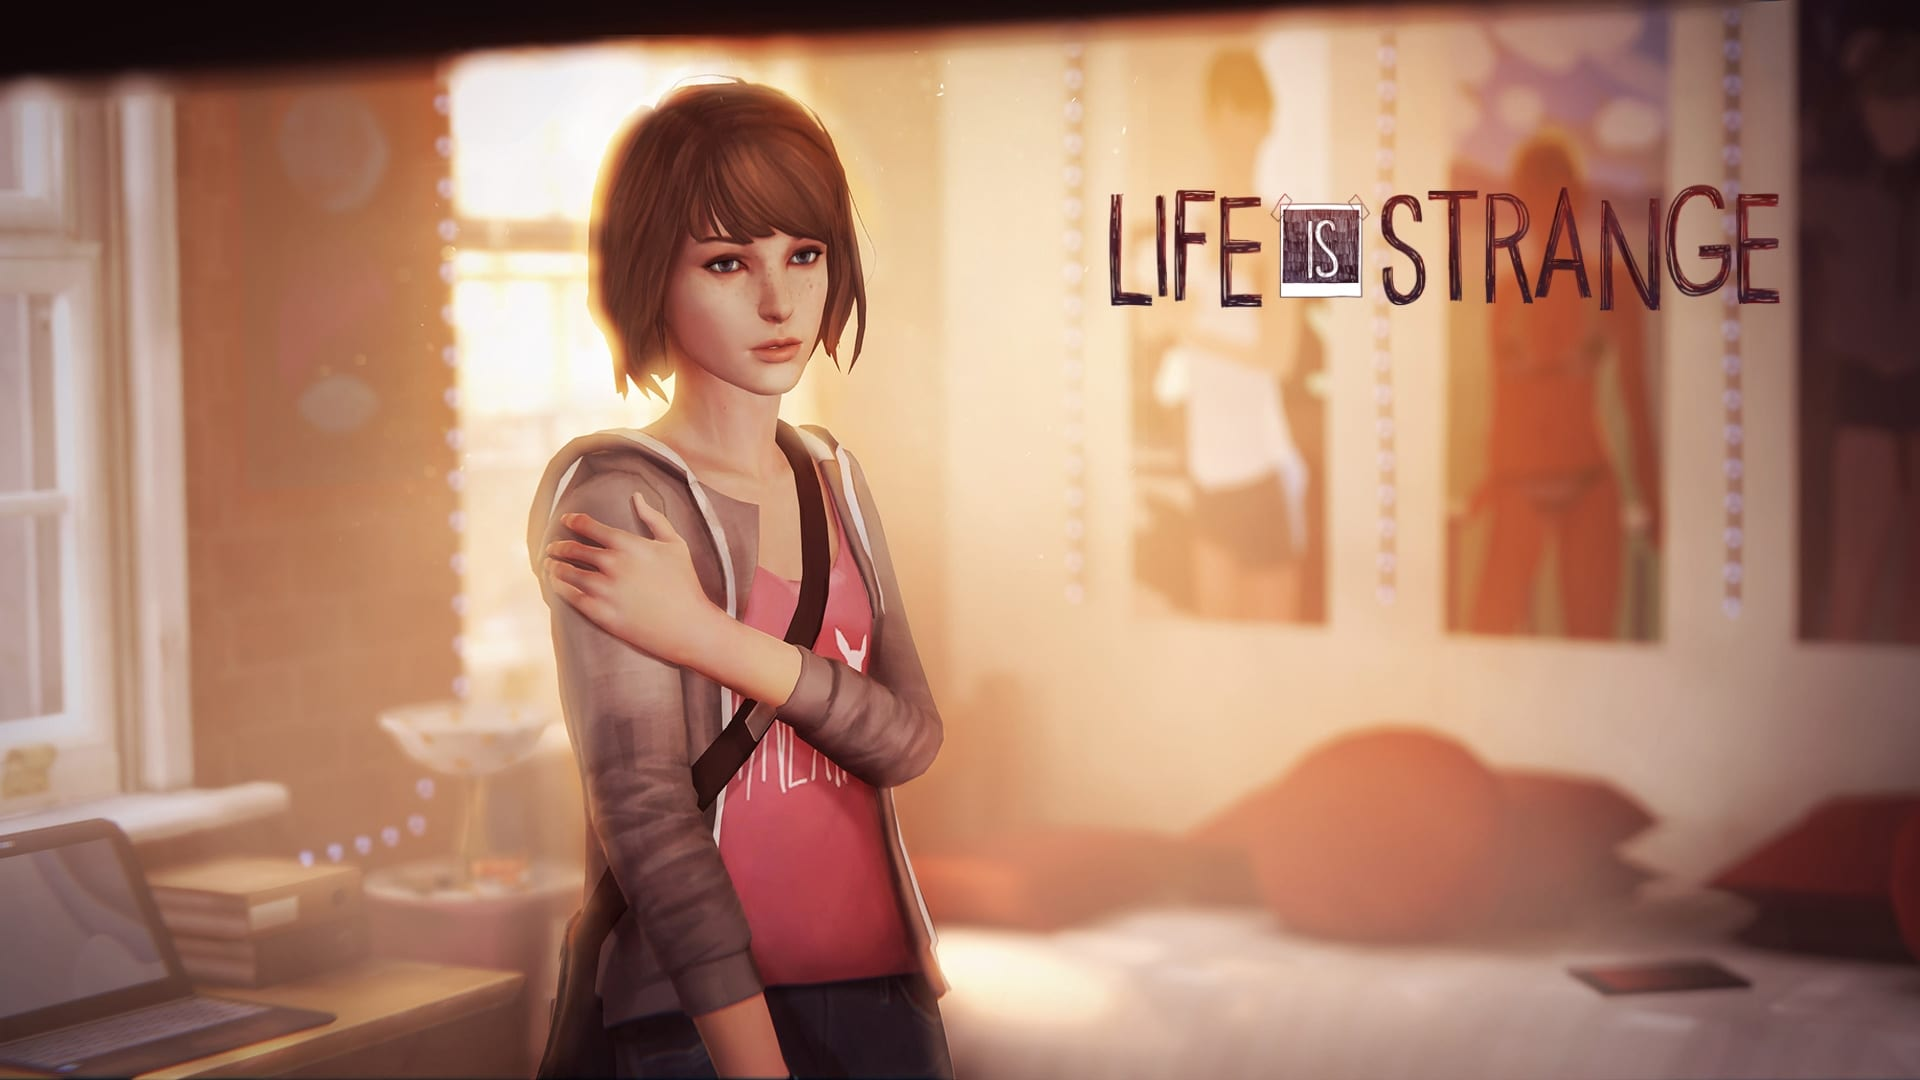 Life is Strange Max and title